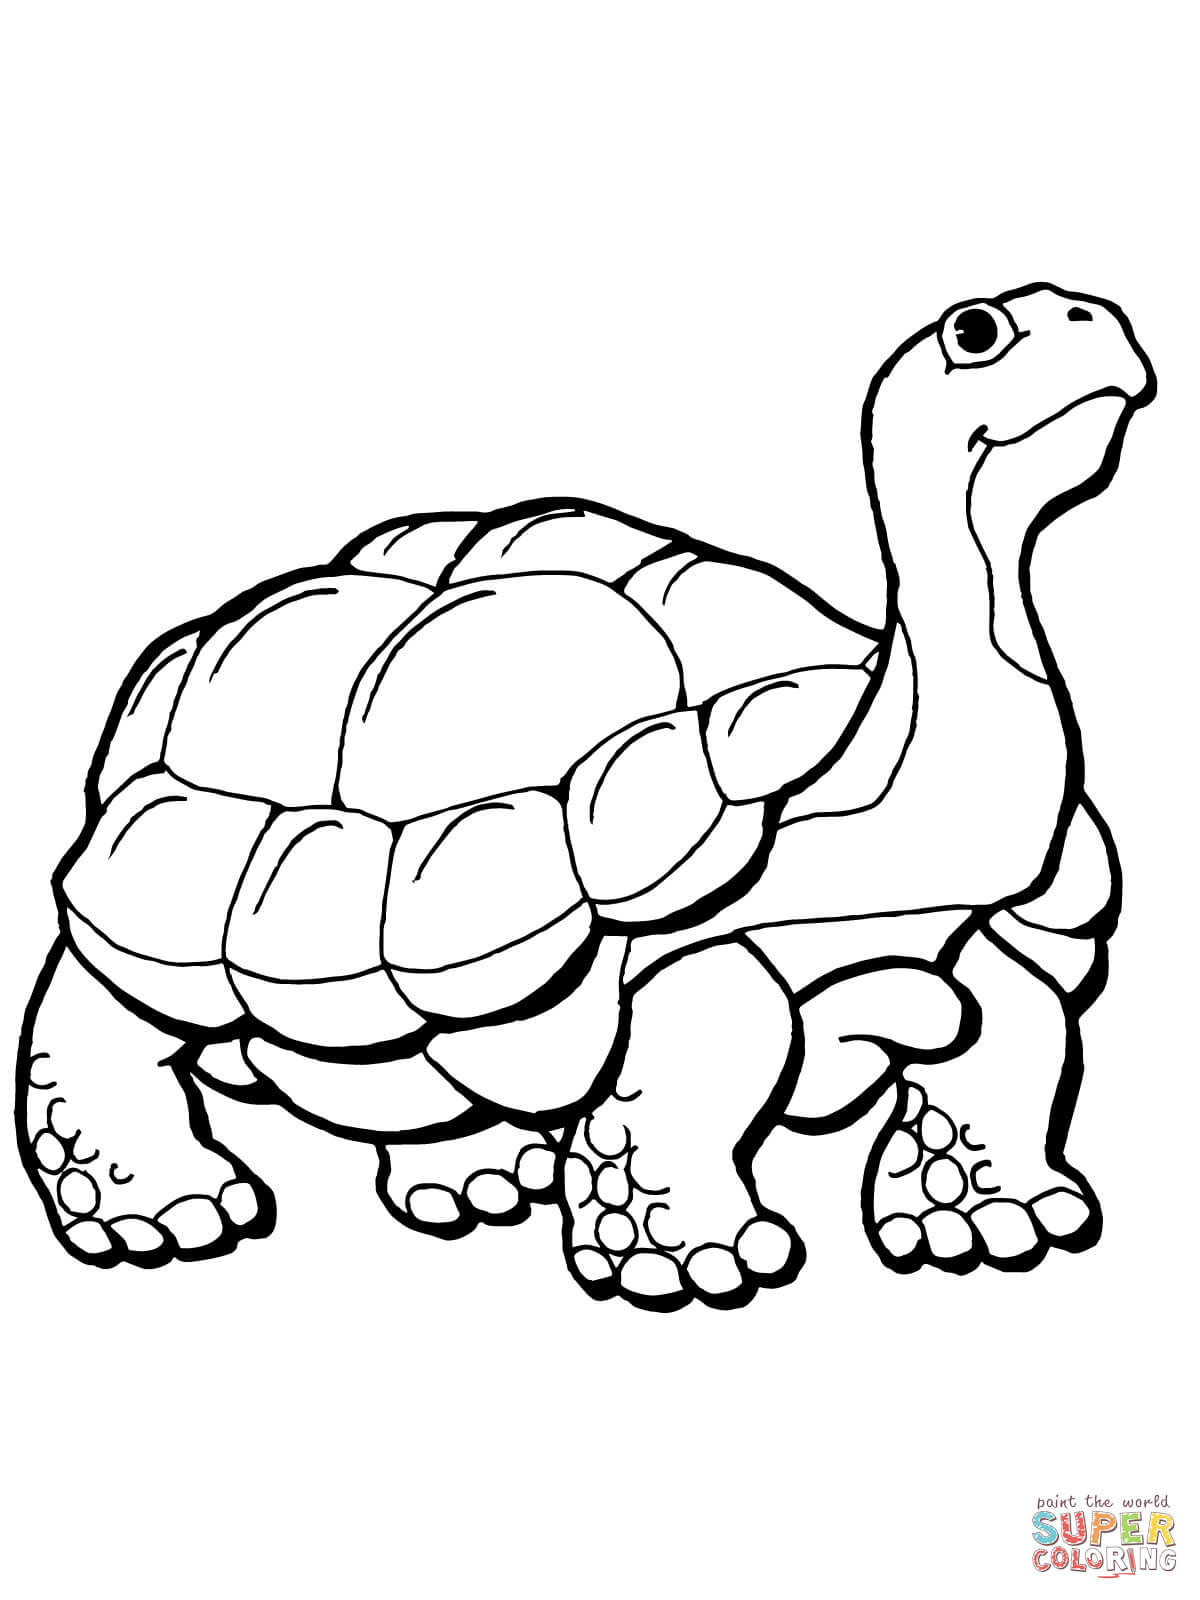 Sulcata Tortoise coloring #8, Download drawings